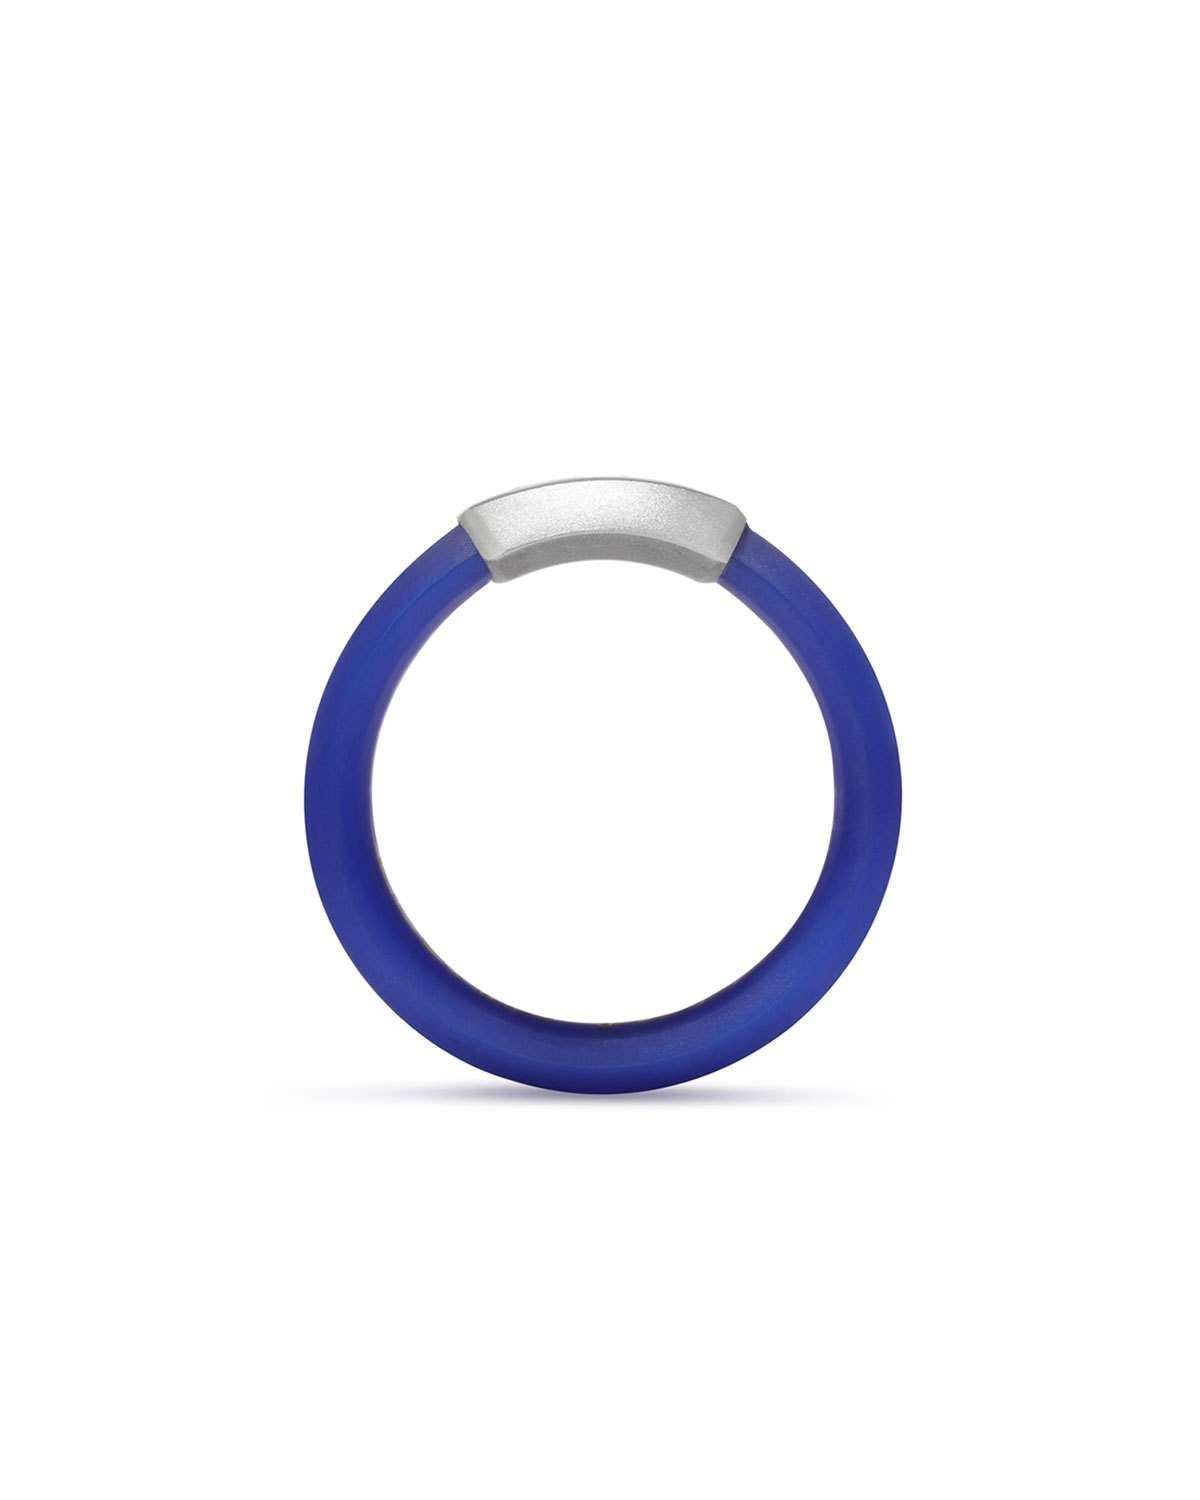 David Yurman Mens Hex Band Ring in Blue Rubber & Sterling Silver nTWyk